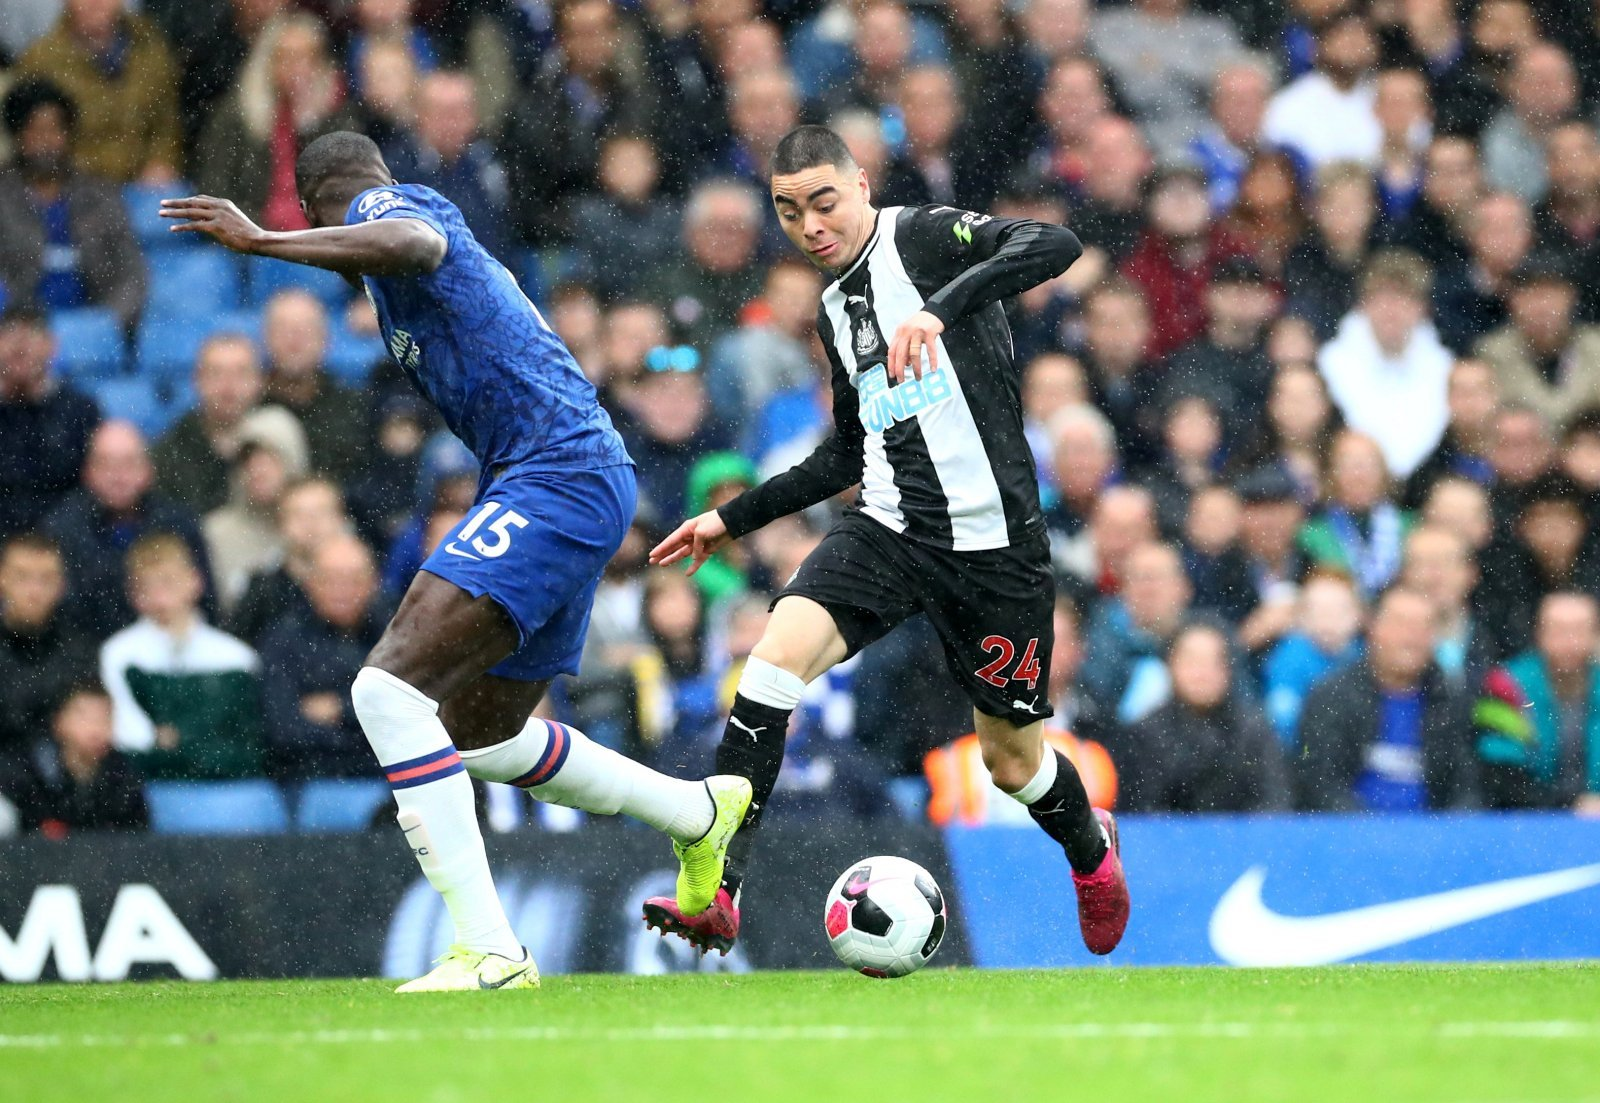 Newcastle United: Fans slam Miguel Almiron for efforts in Chelsea defeat